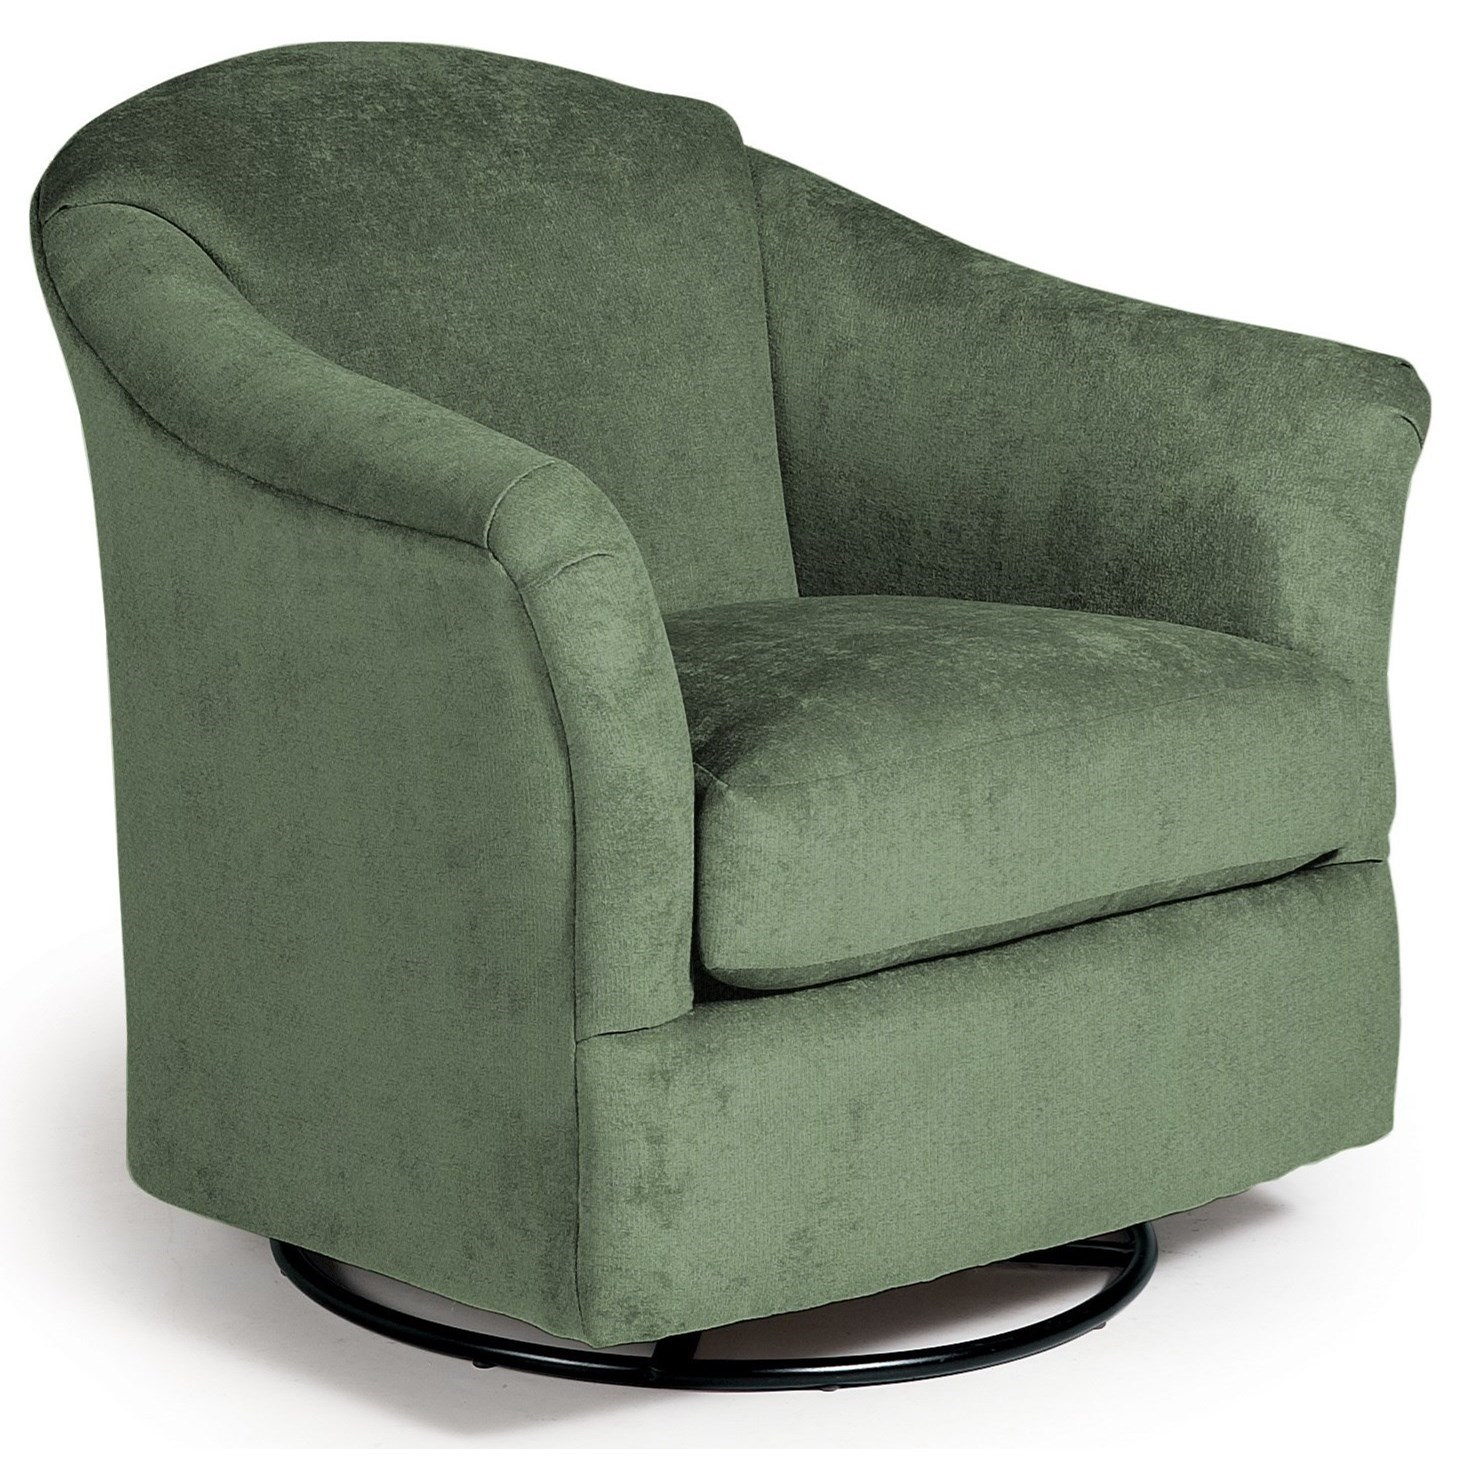 chair glider. best home furnishings chairs - swivel glide darby glider chair